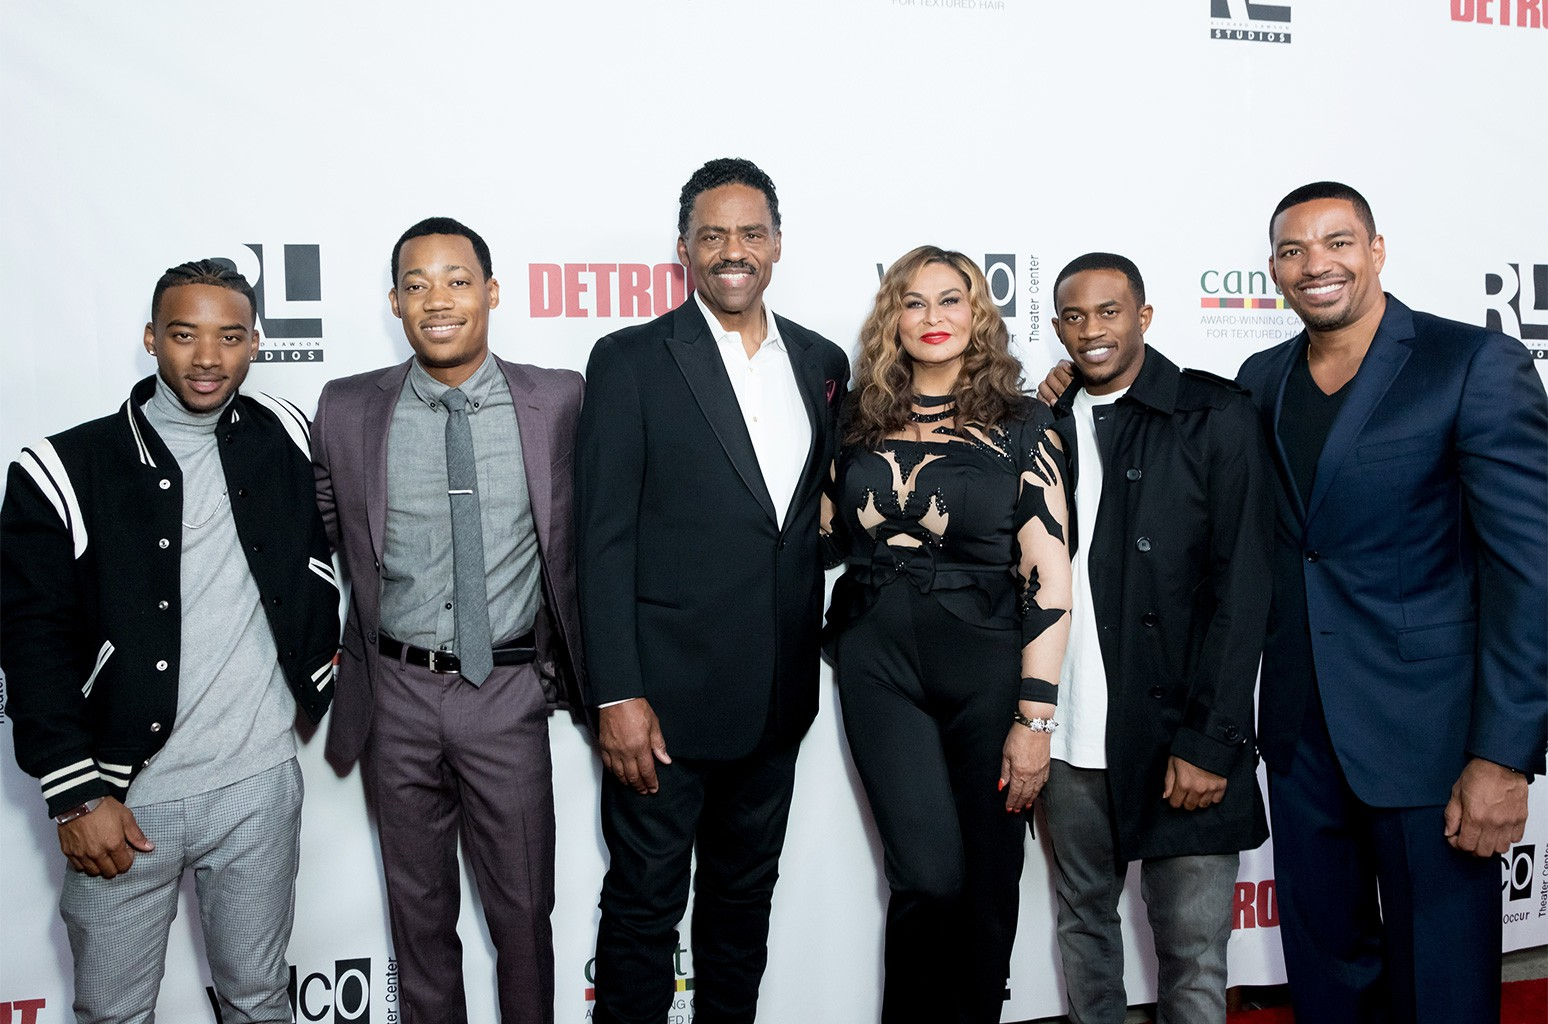 Actors Algee Smith and Tyler James Williams, Richard Lawson, Tina Knowles Lawson and Actors Malcolm David Kelly and Laz Alonso attend Richard Lawson and Tina Knowles Lawson